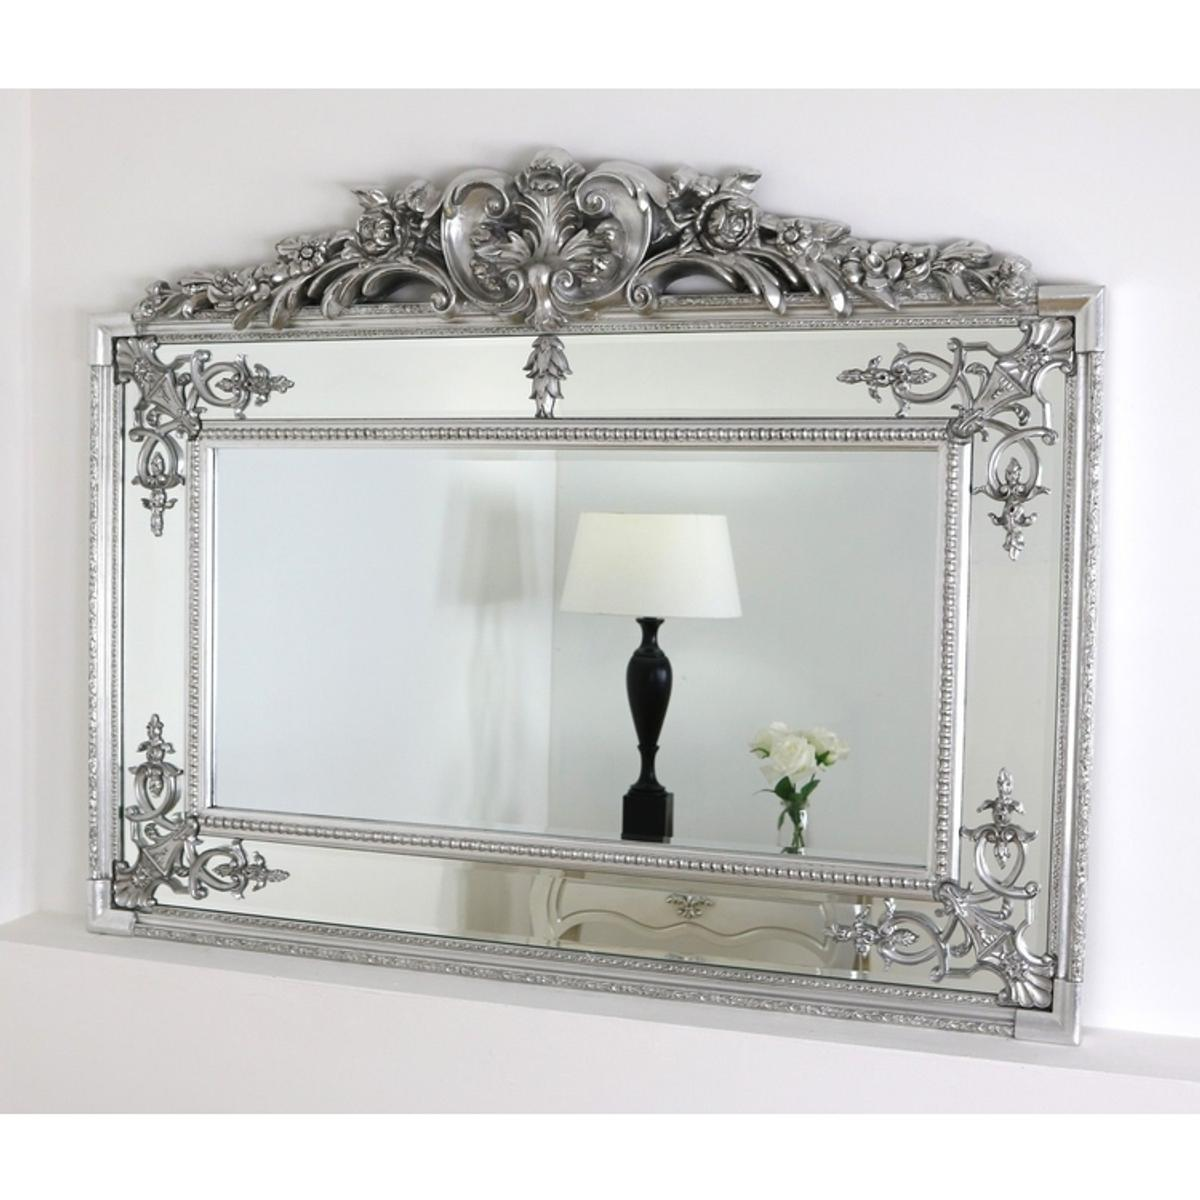 Beautiful Large Silver Ornate Wall Mirror In St7 Lyme For 165 00 For Sale Shpock